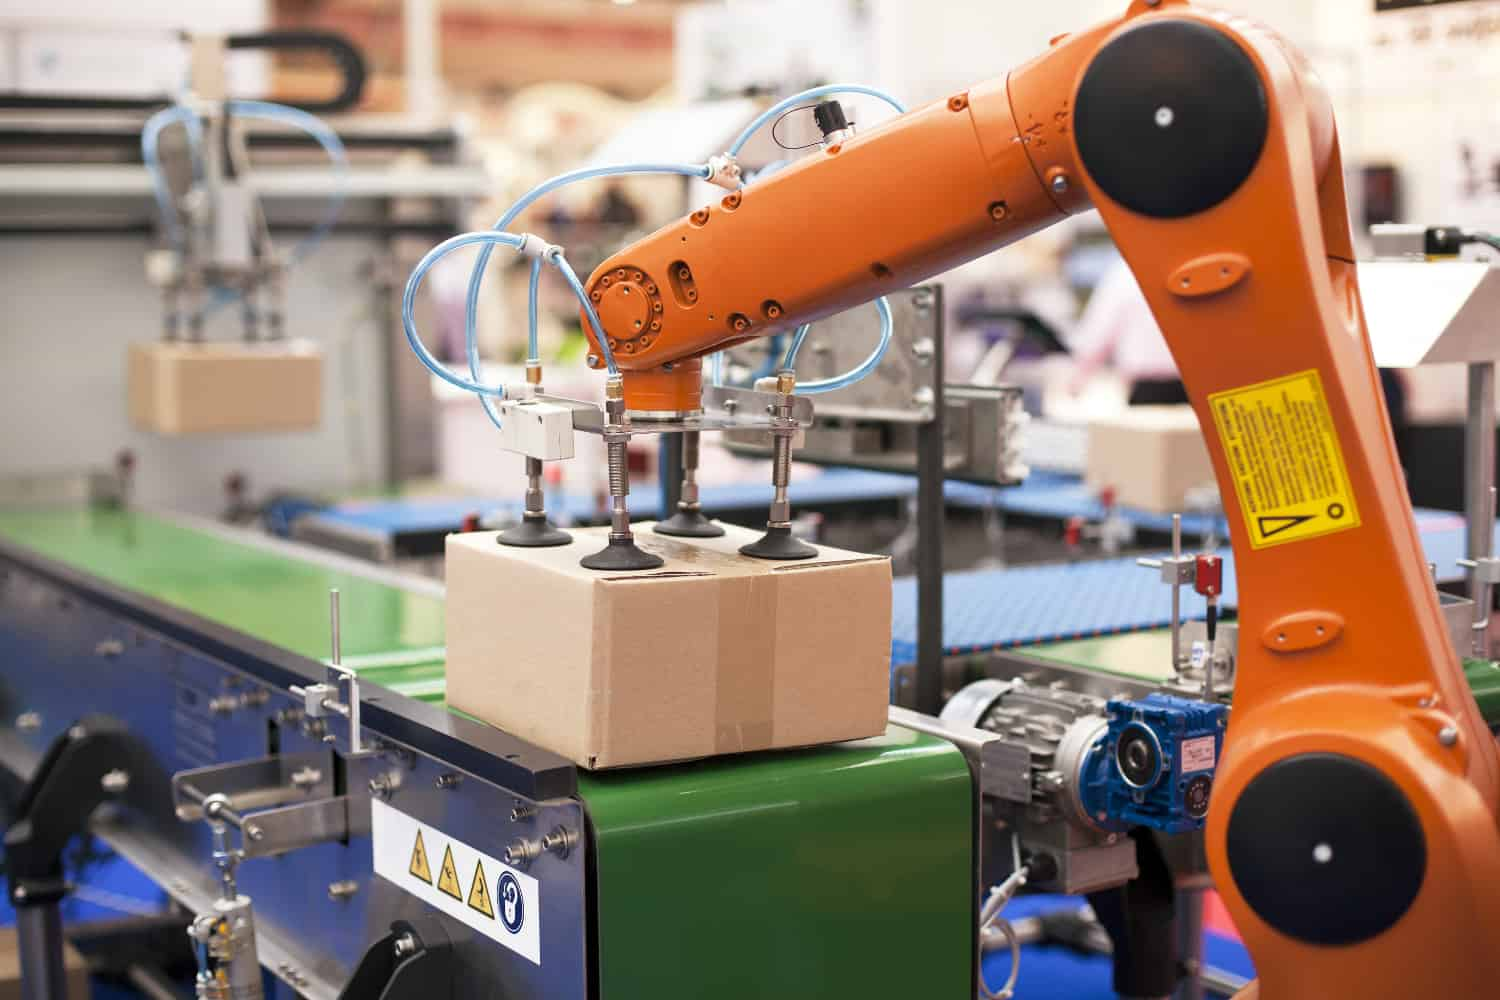 Collaborative robotics is coming to a DC near you - FreightWaves